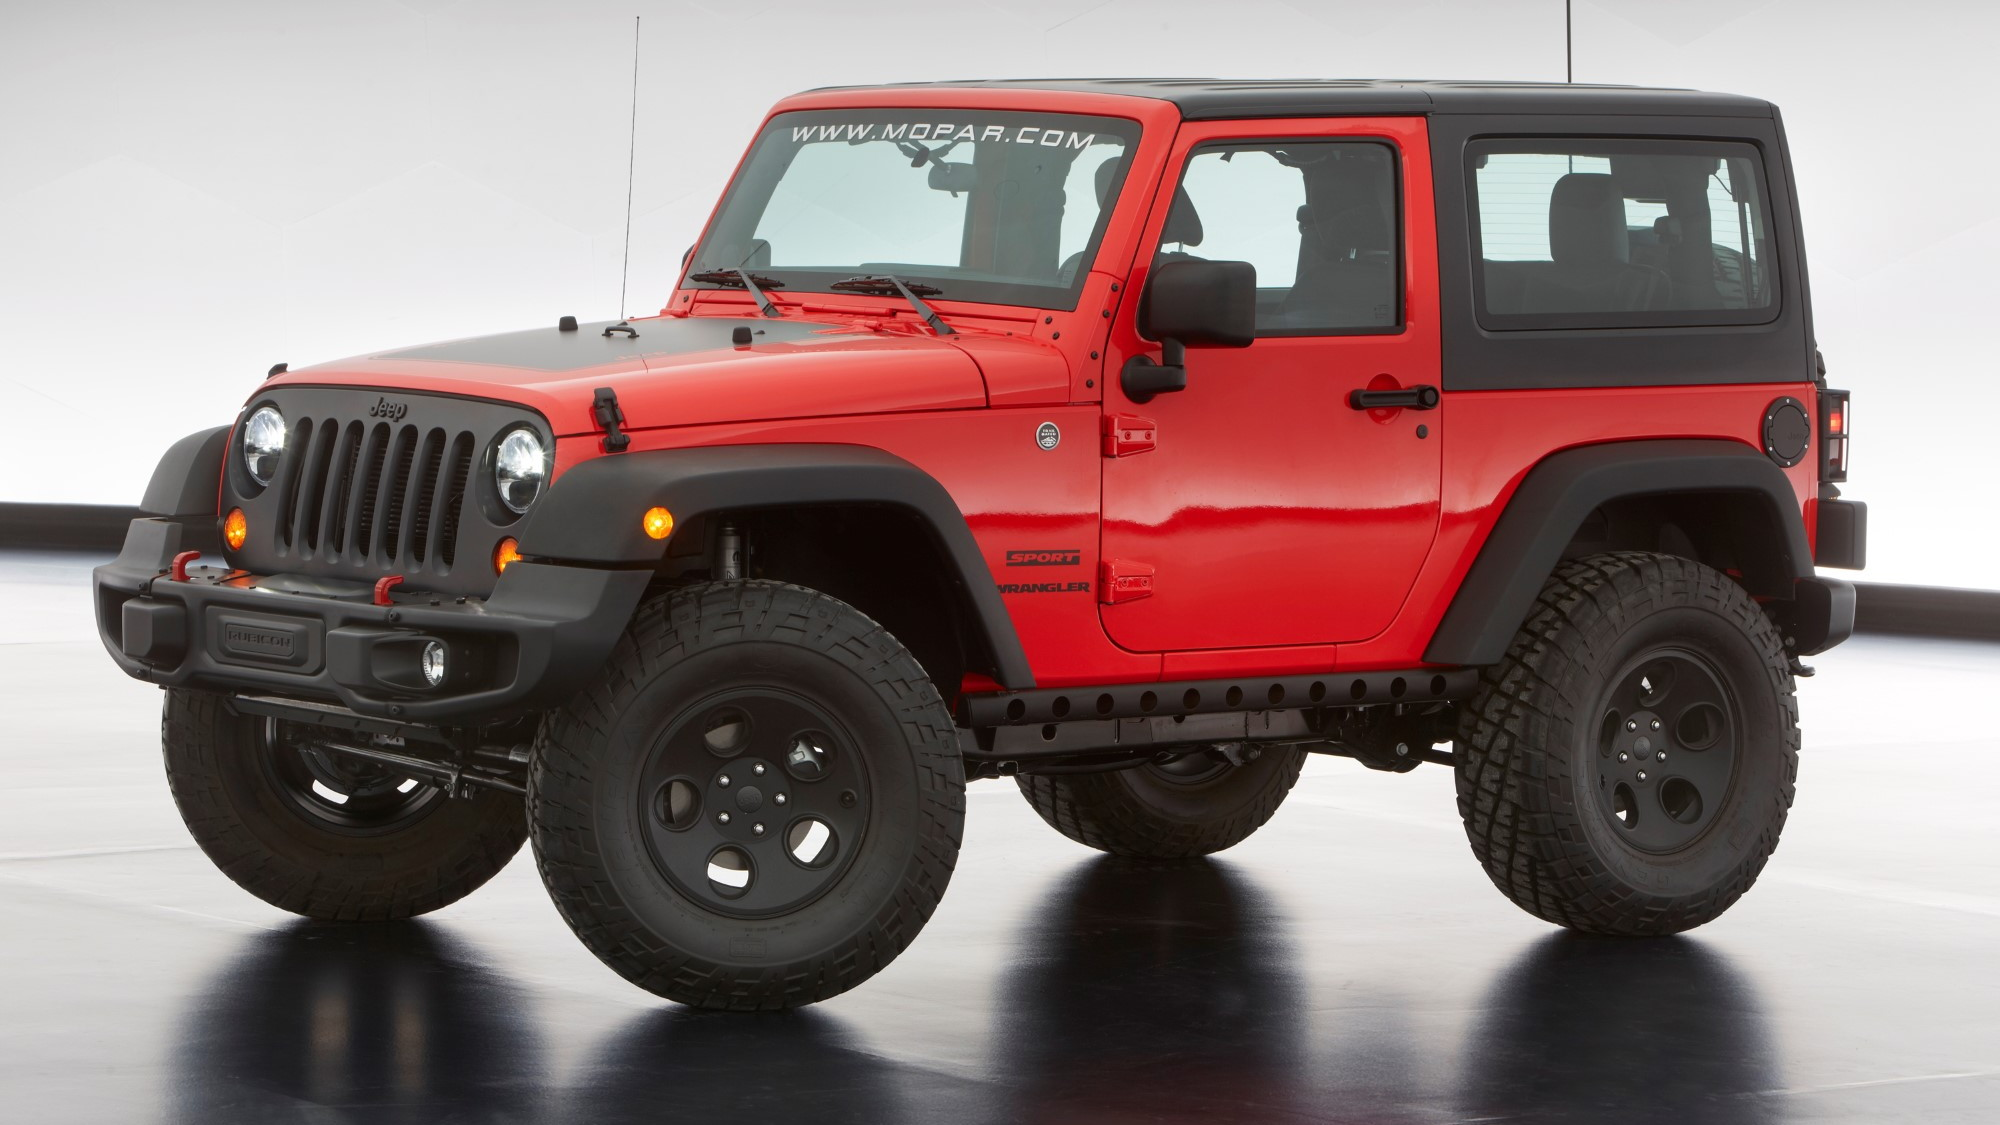 Jeep Wrangler Slim, 2013 Moab Easter Jeep Safari Concept